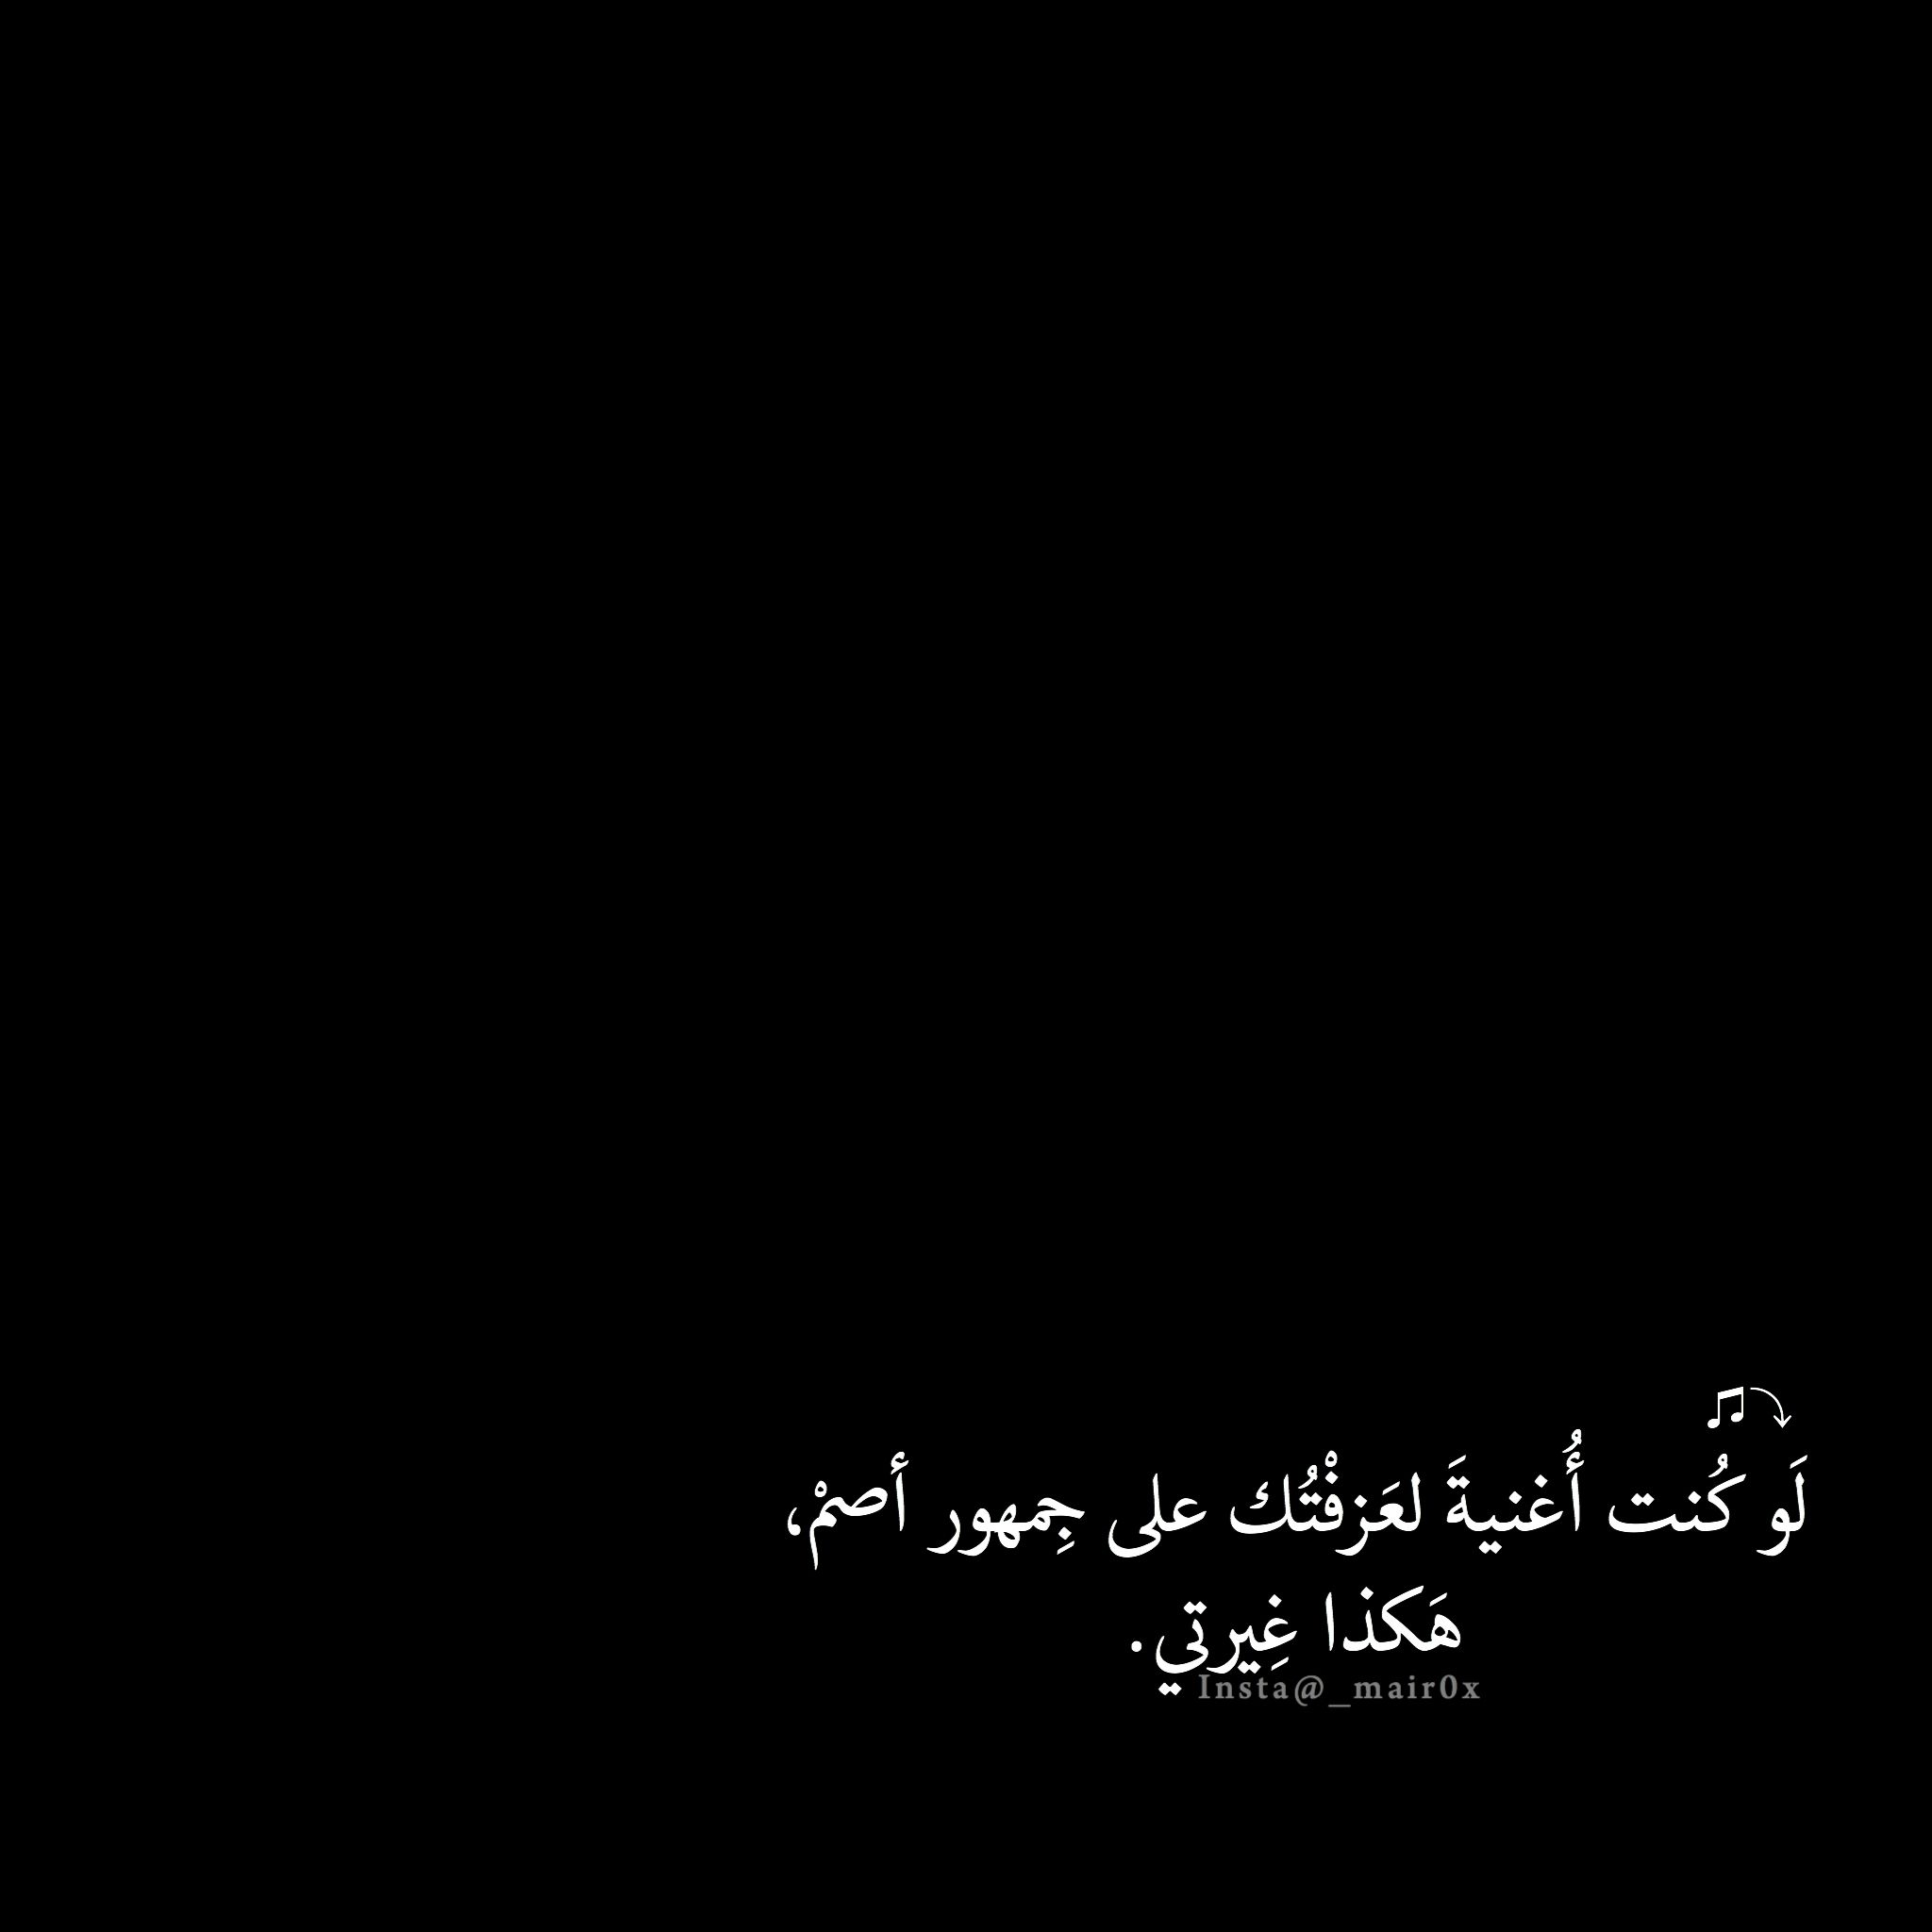 اقتباسات ابيض اسود Black White Quote Wisdom Quotes Life Photo Quotes Arabic Quotes